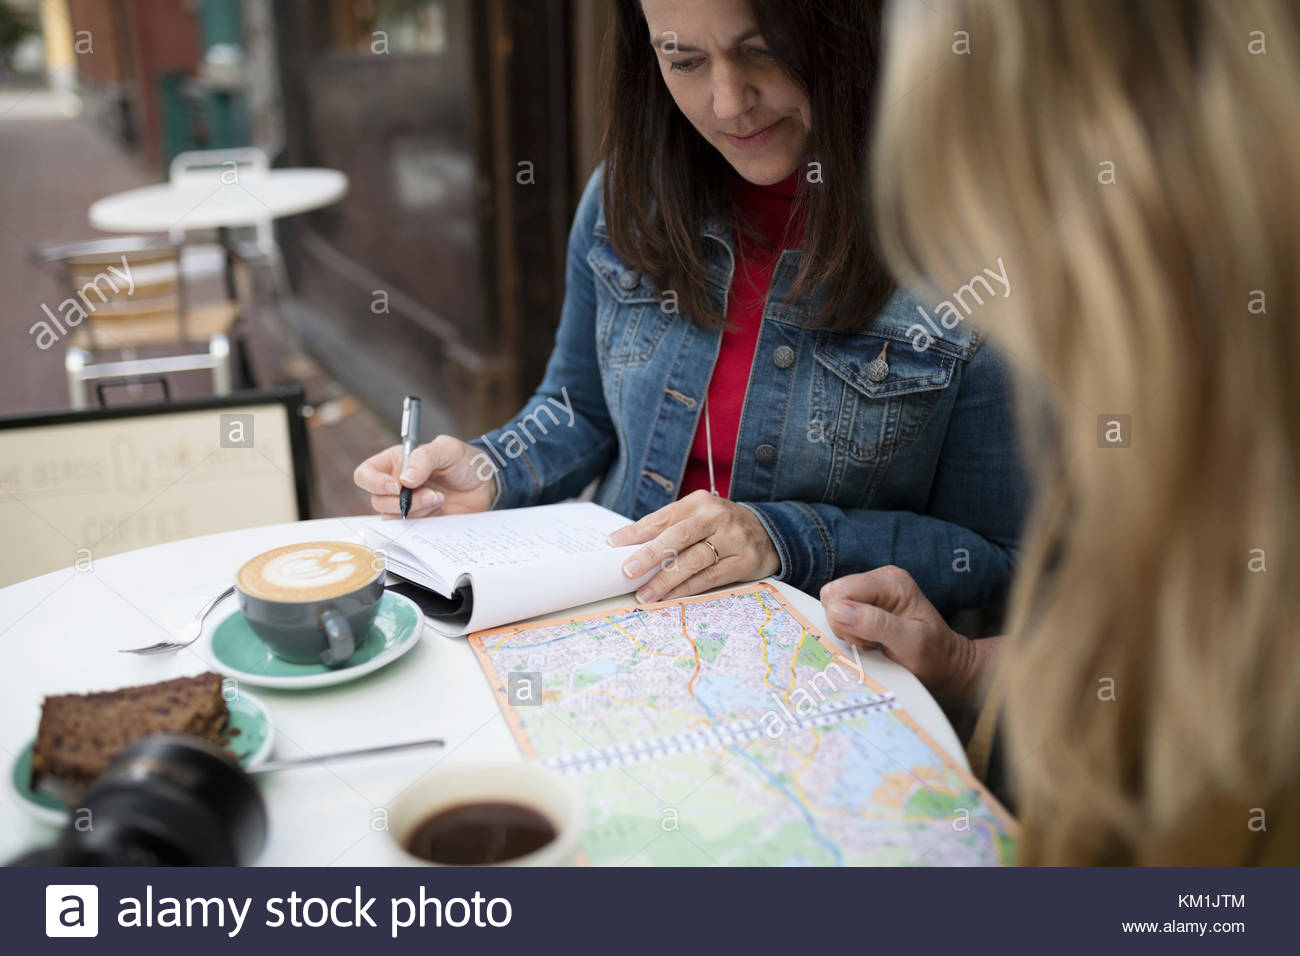 Mature women friends planning with map, drinking coffee at sidewalk cafe - Stock Image